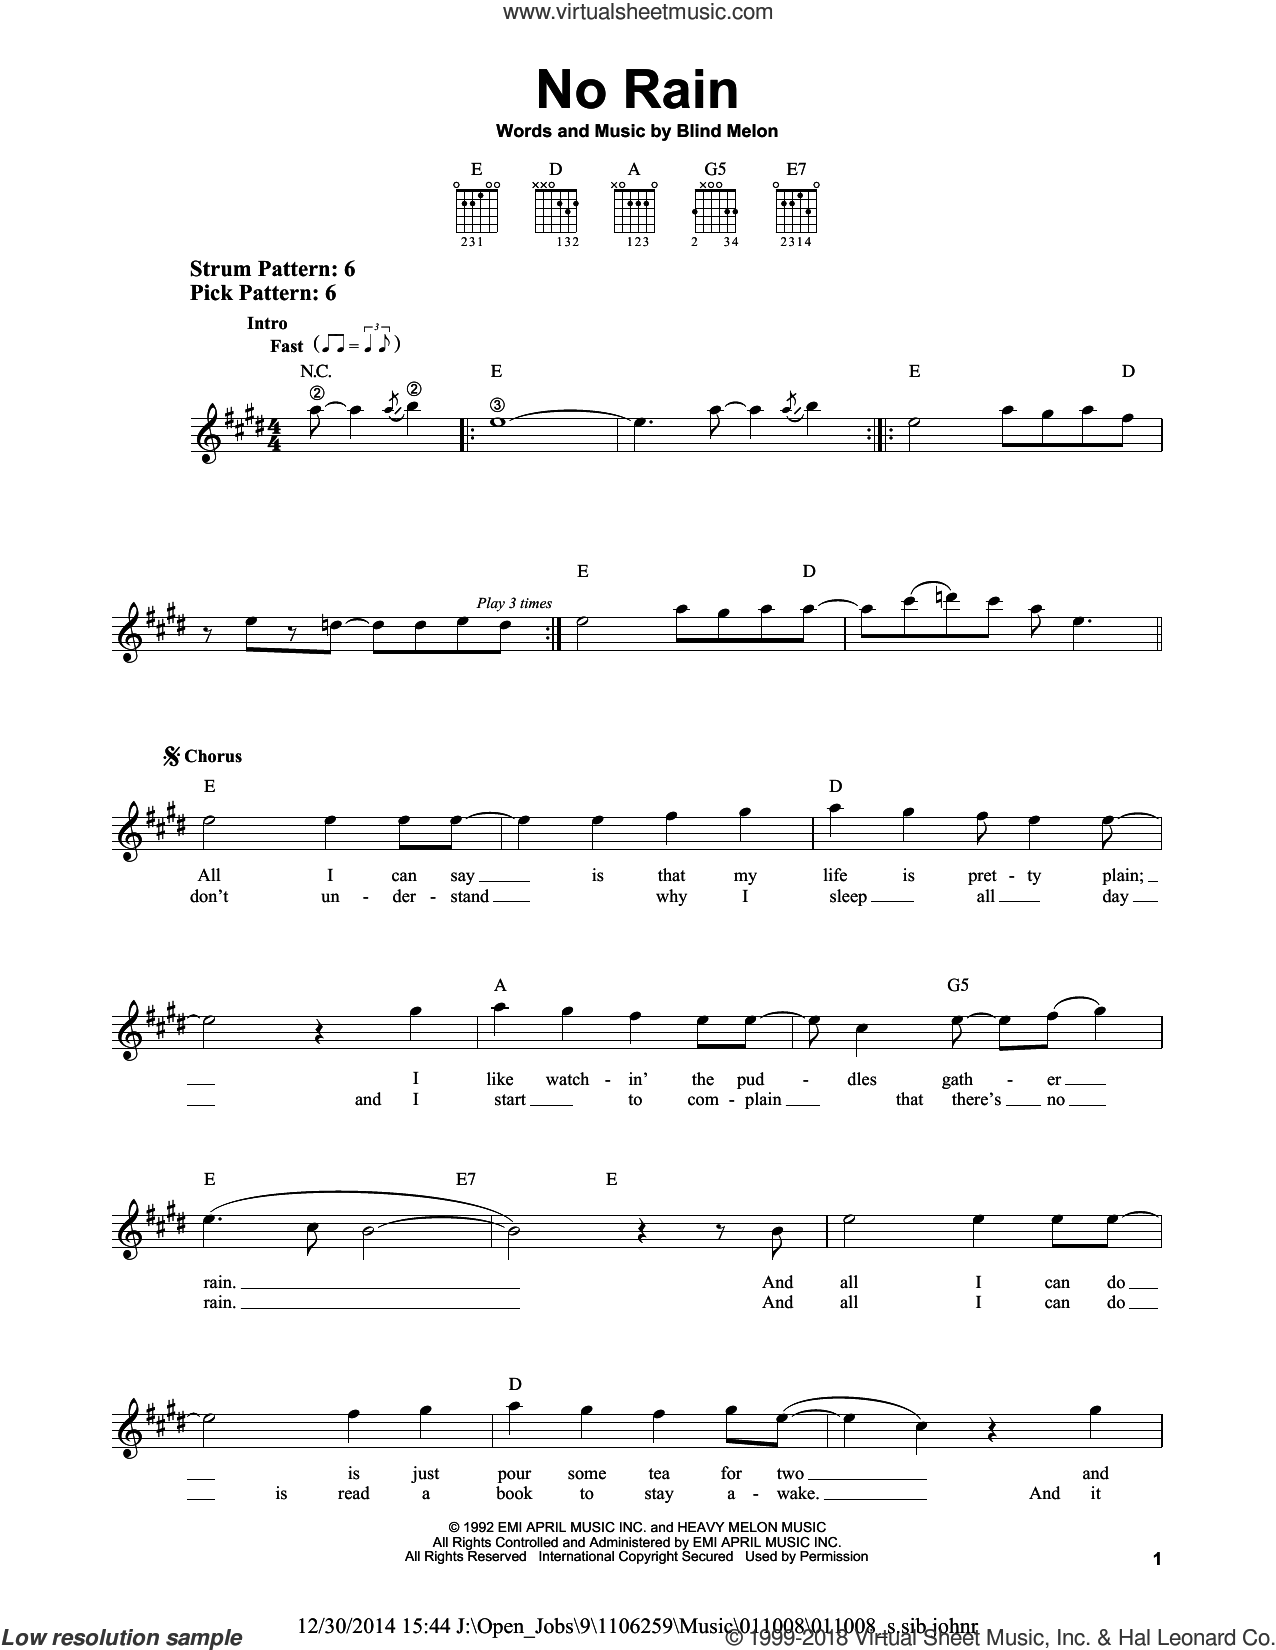 No Rain sheet music for guitar solo (chords) by Blind Melon, easy guitar (chords)